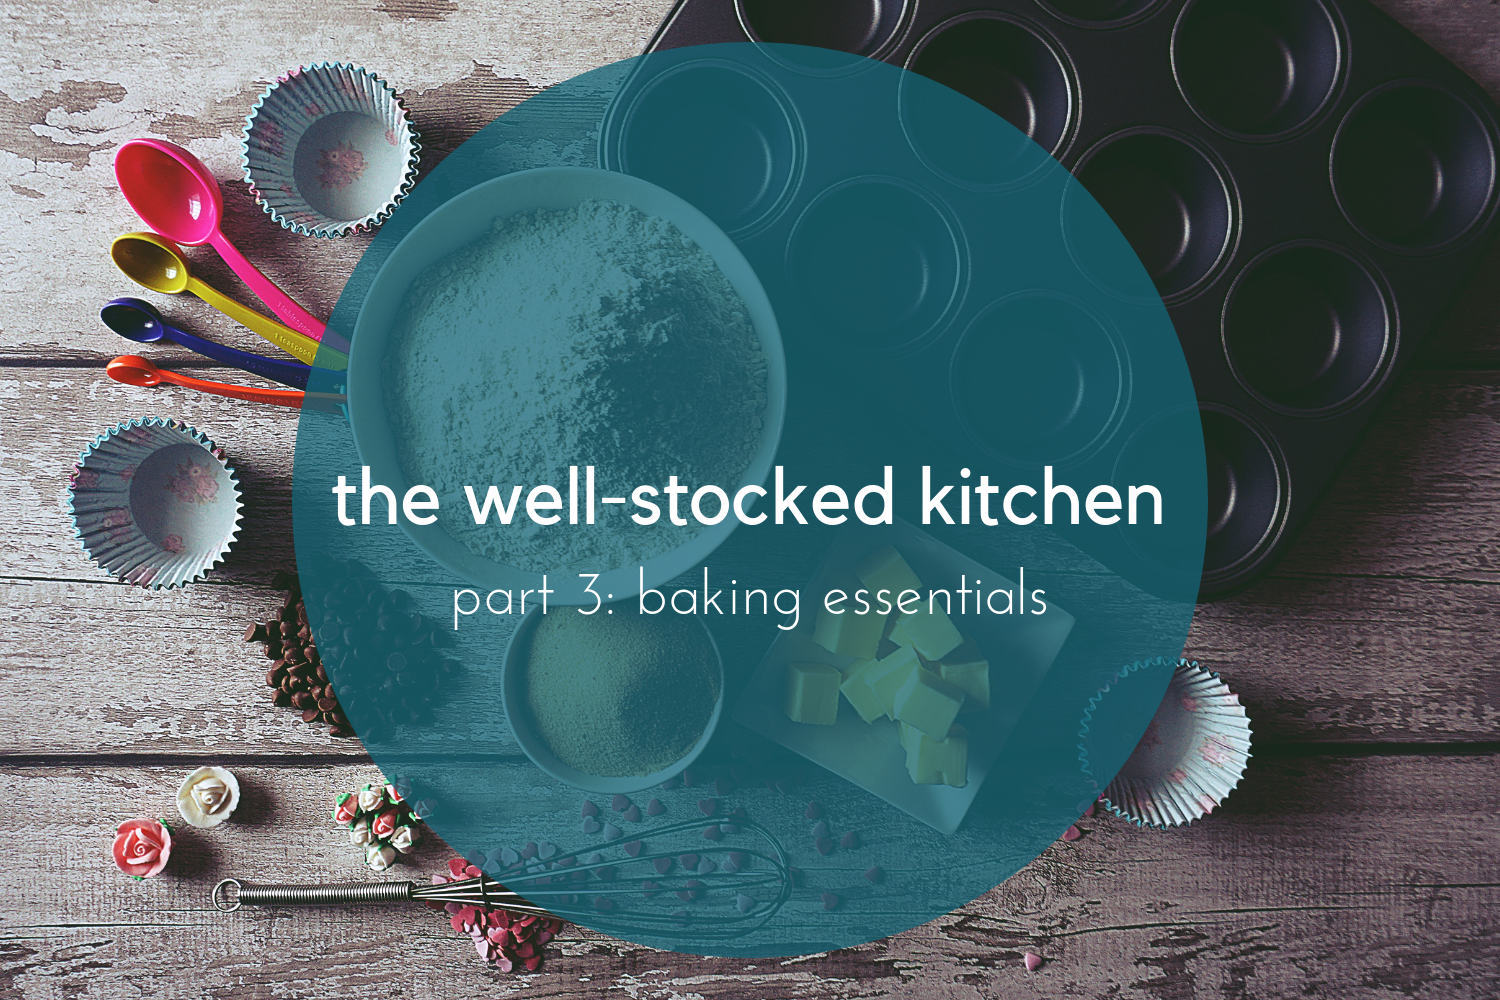 beneath the crust: the well-stocked kitchen, part 3, baking essentials